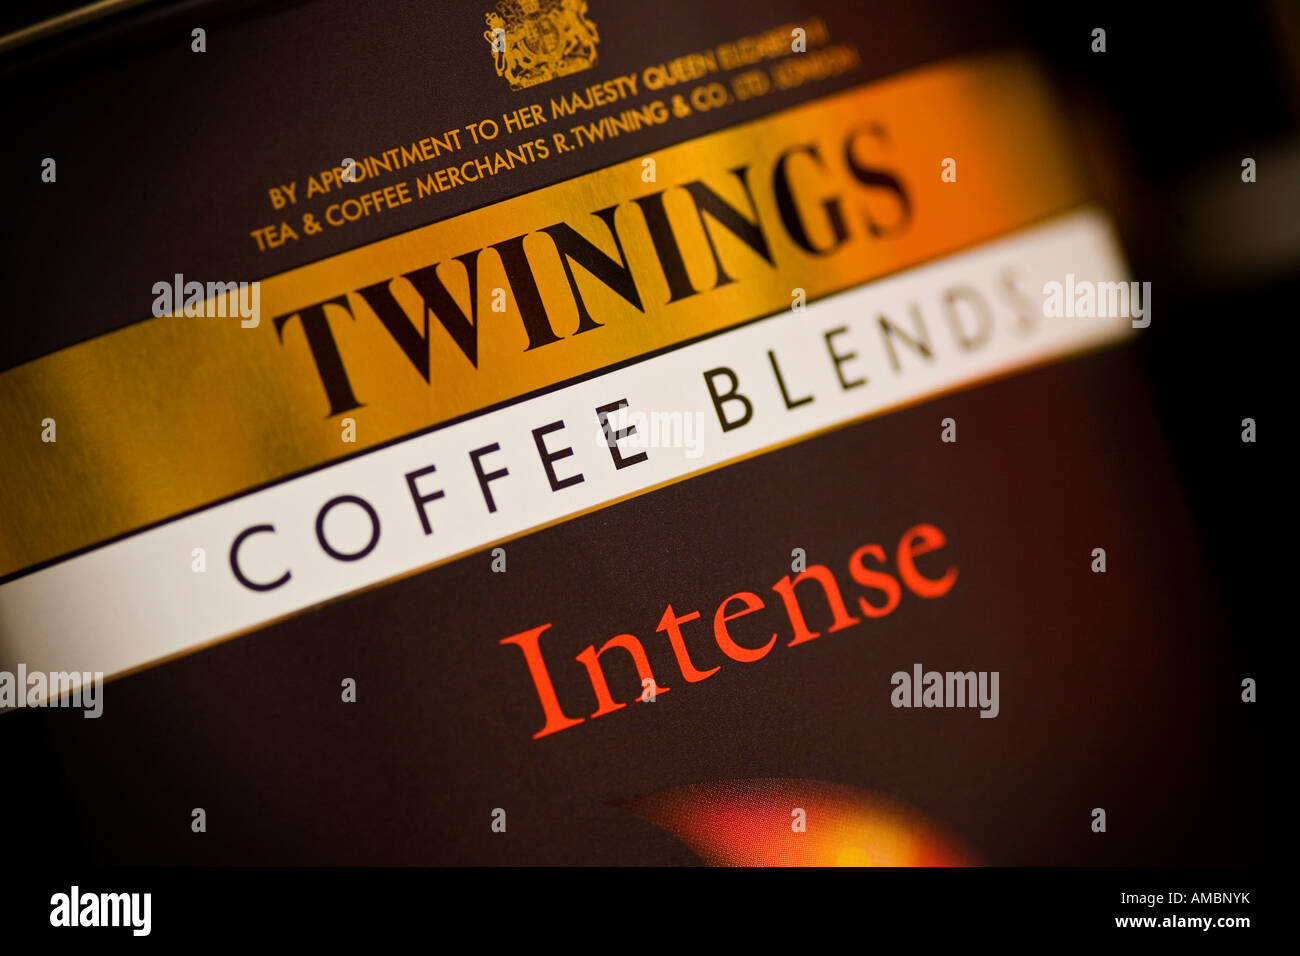 Twinings Intense coffee blends Twinings is an Associated British Foods brand - Stock Image